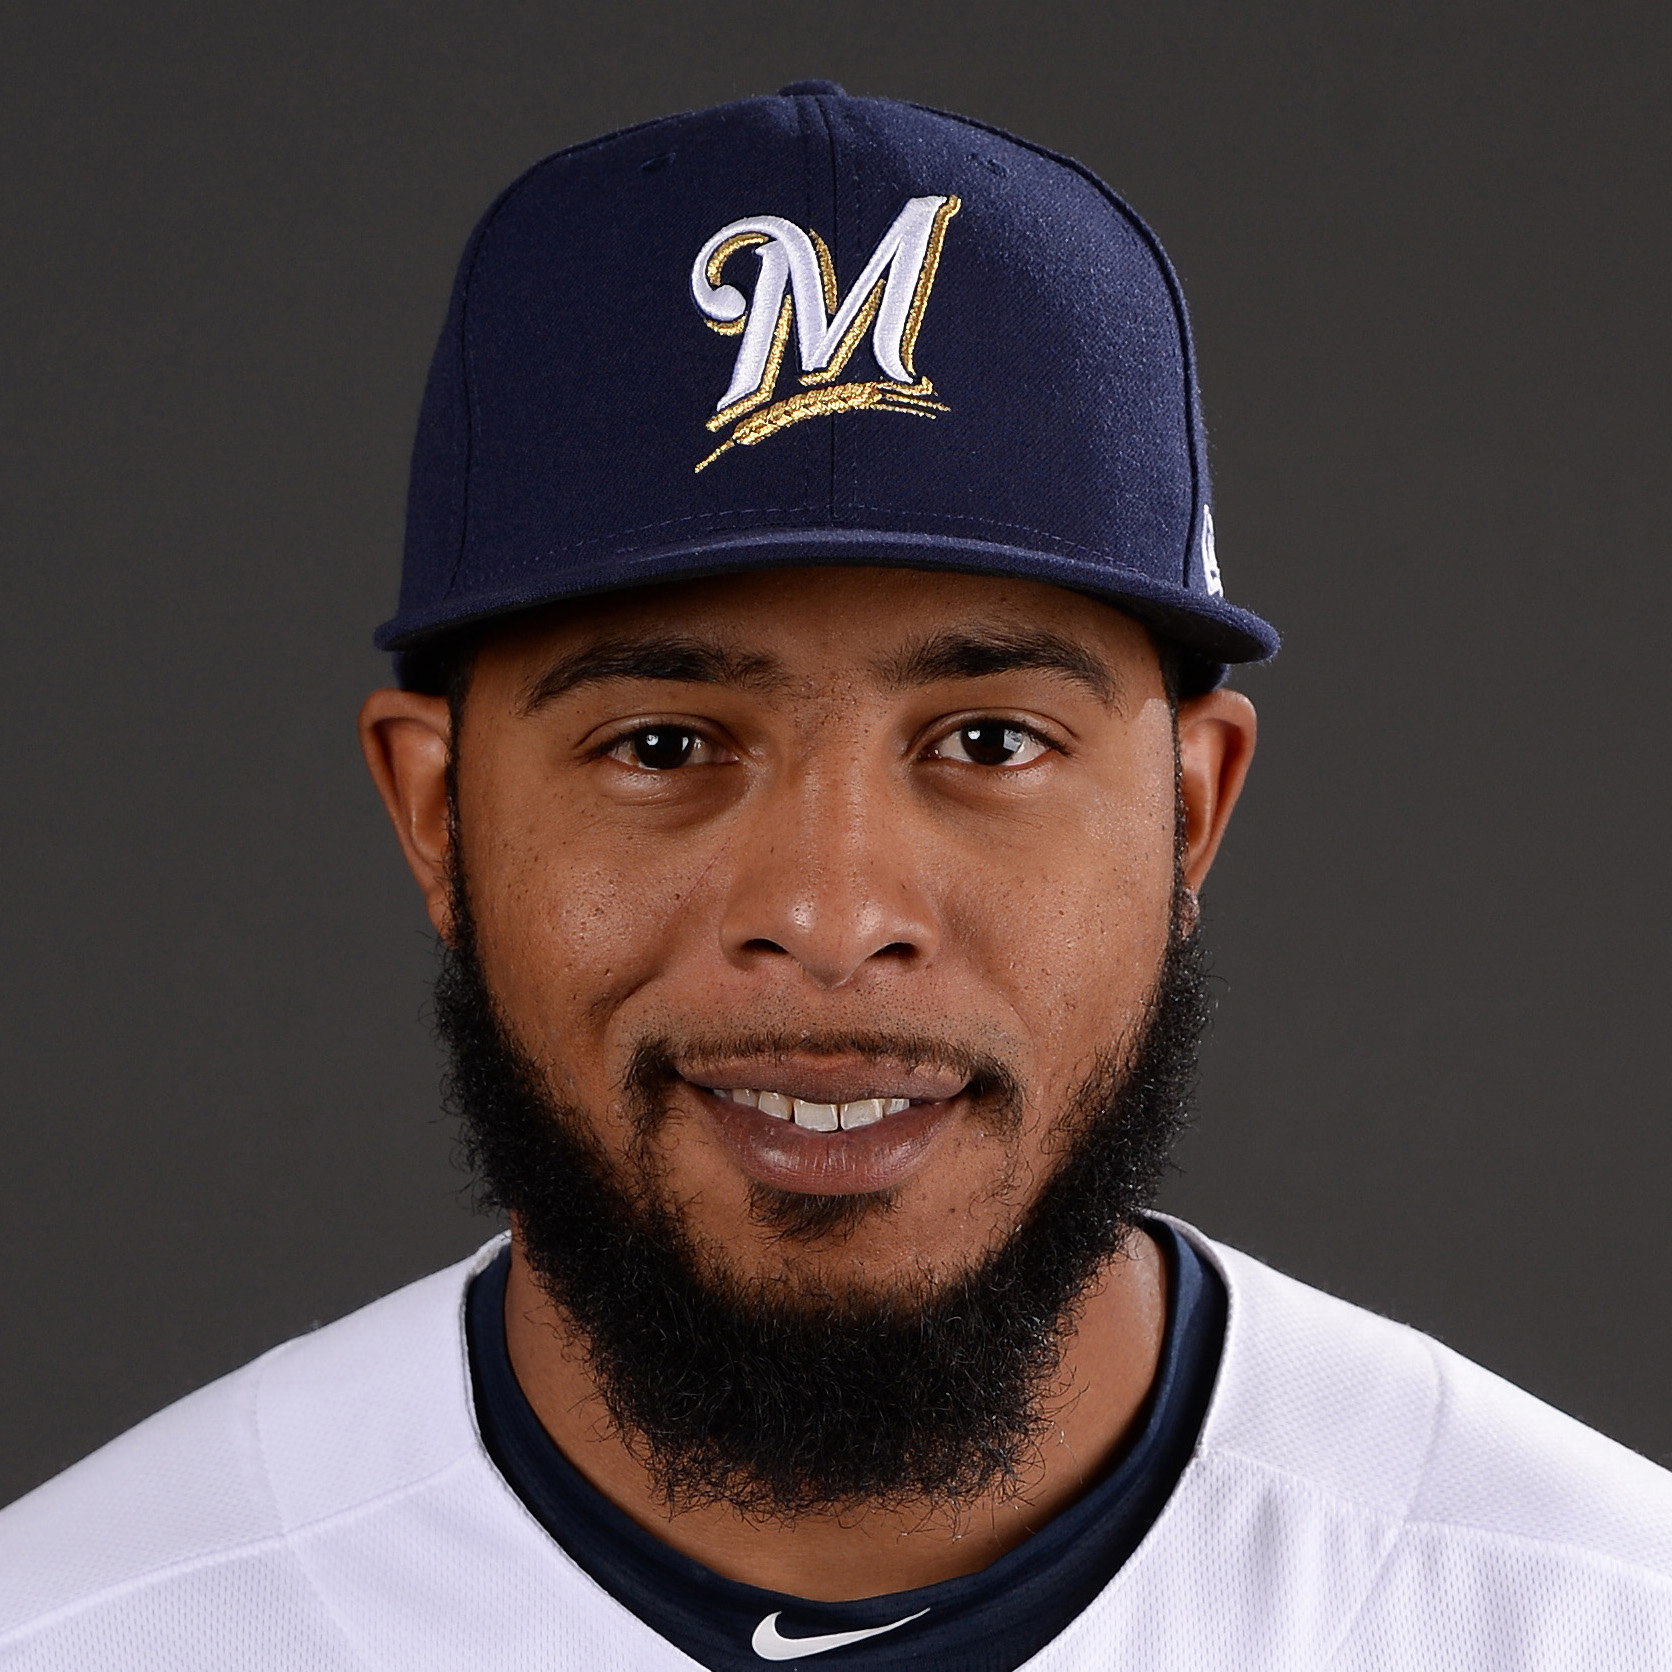 Jeremy Jeffress (R) Headshot